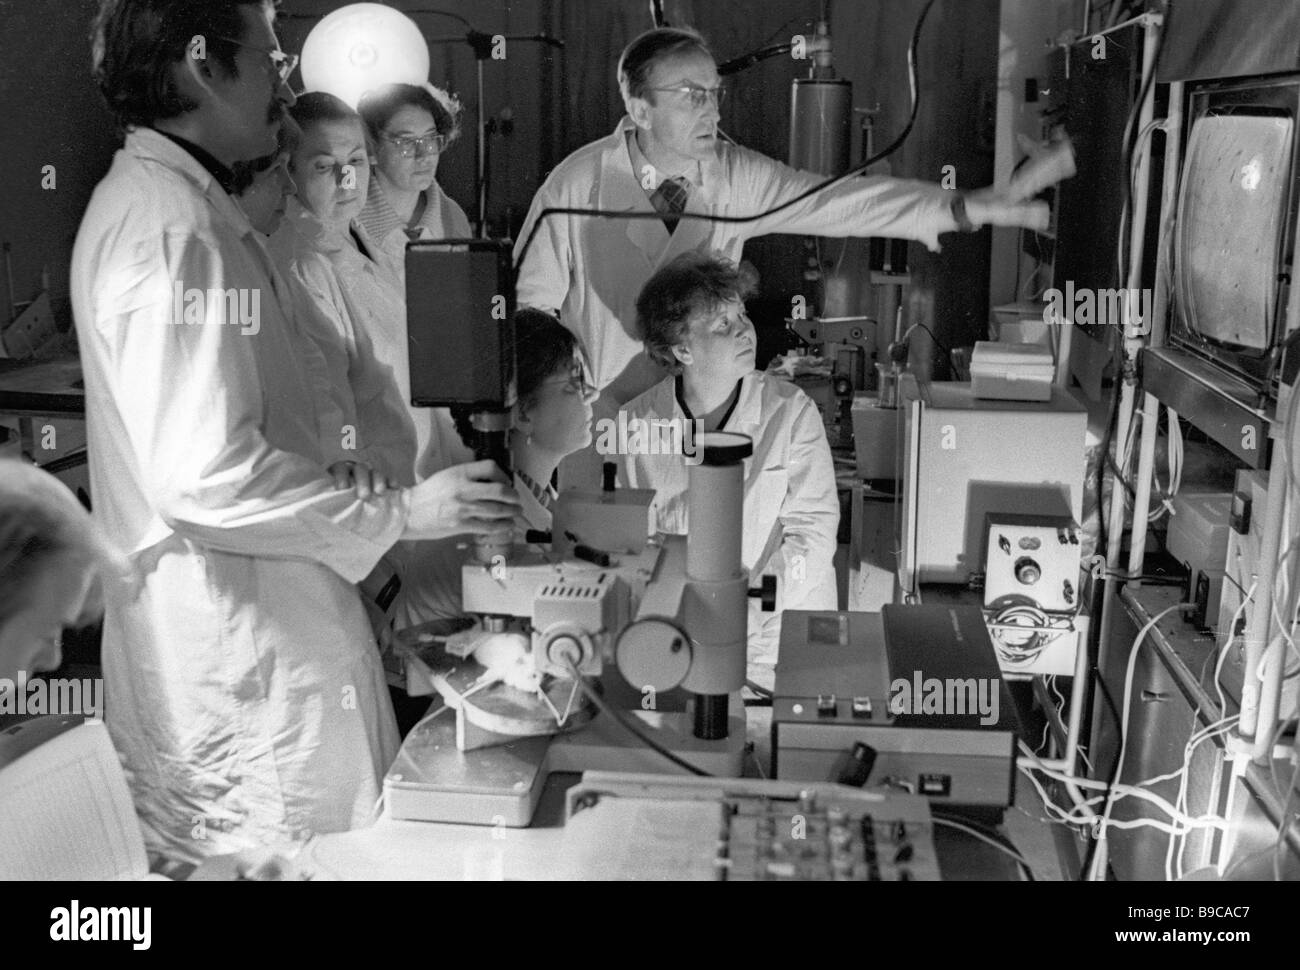 Staff researchers of the Hematology and Blood Transfusion Institute check experiment results - Stock Image